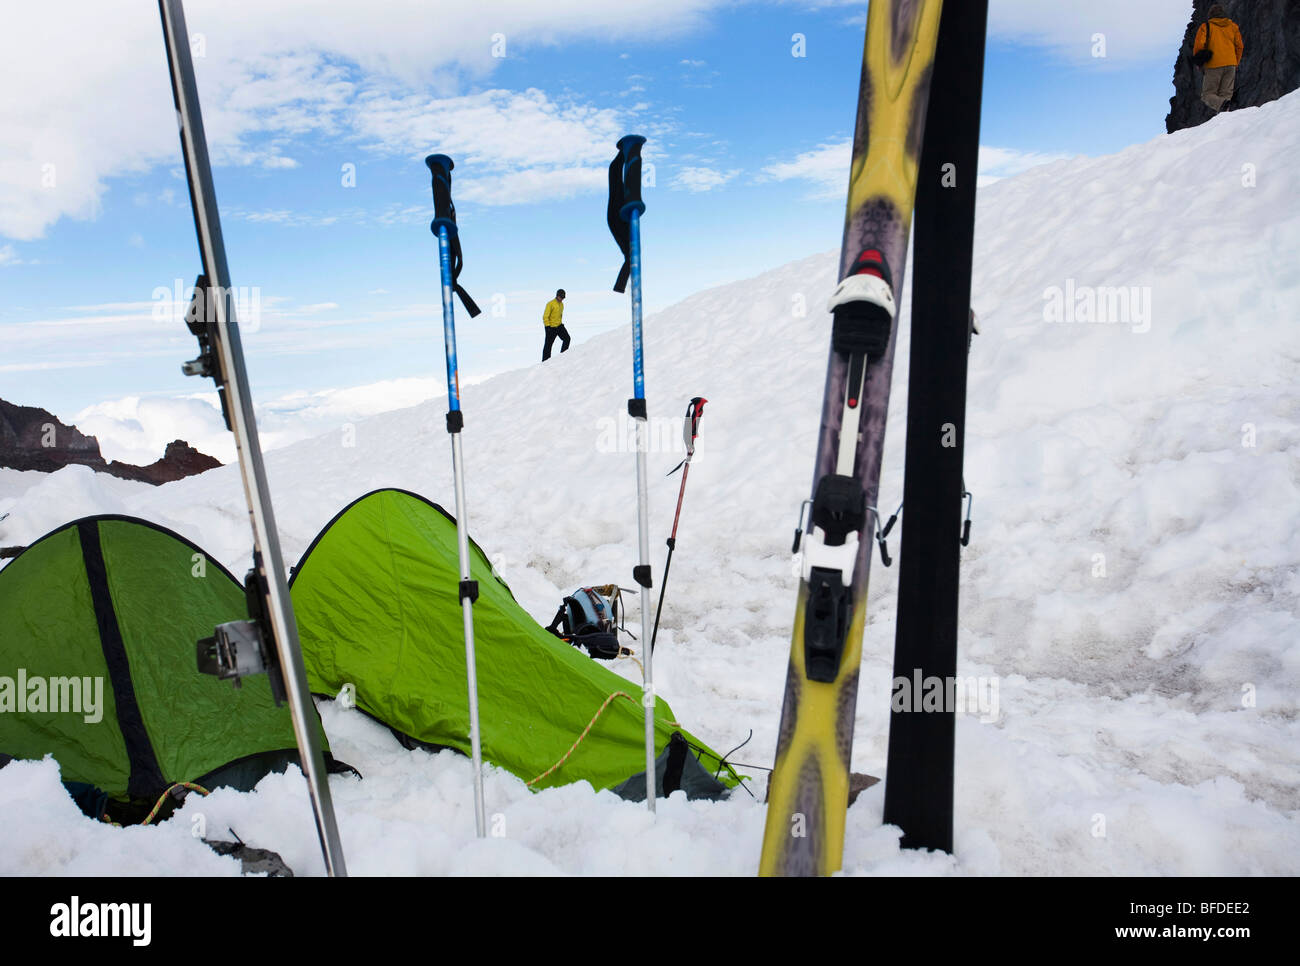 A climber walks the ridgeline with two bivy sacks and skis in the foreground. - Stock Image